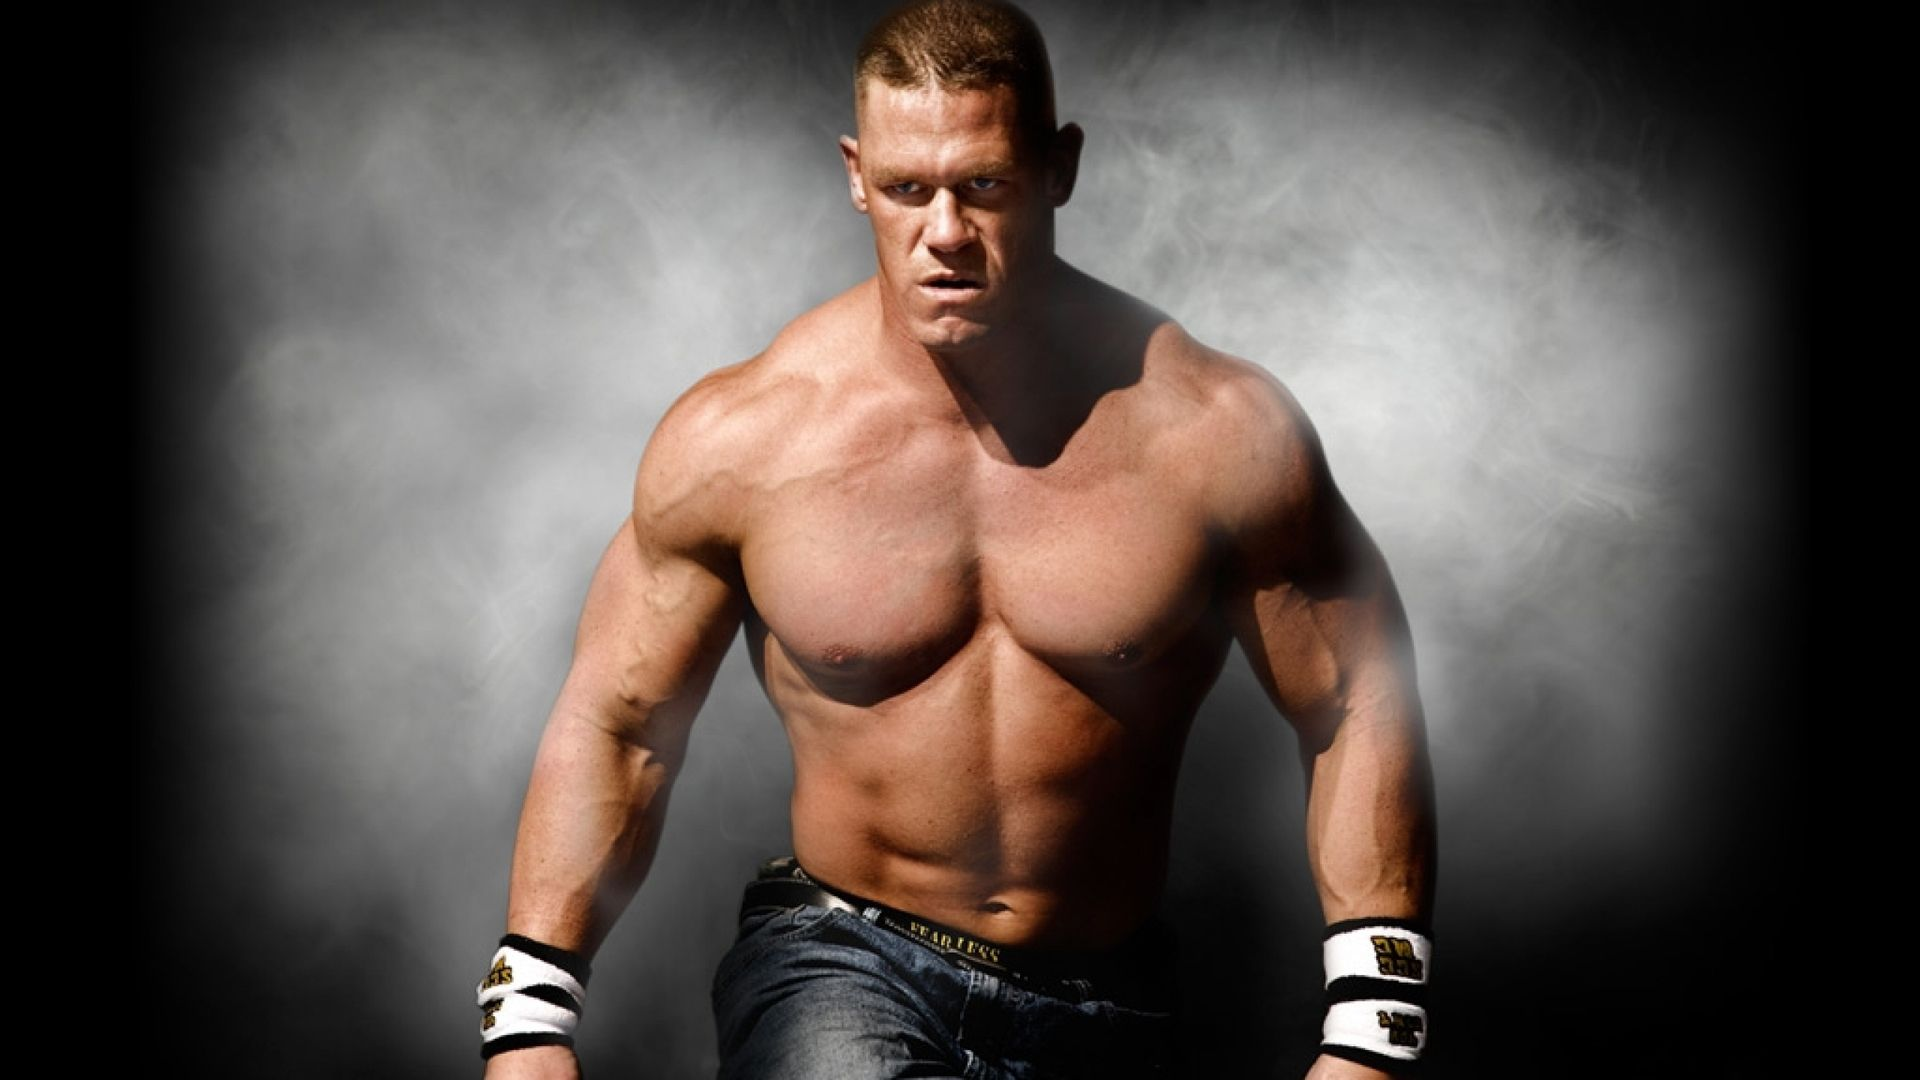 John Cena Wallpapers must downloads 19201080 Pics Of John Cena